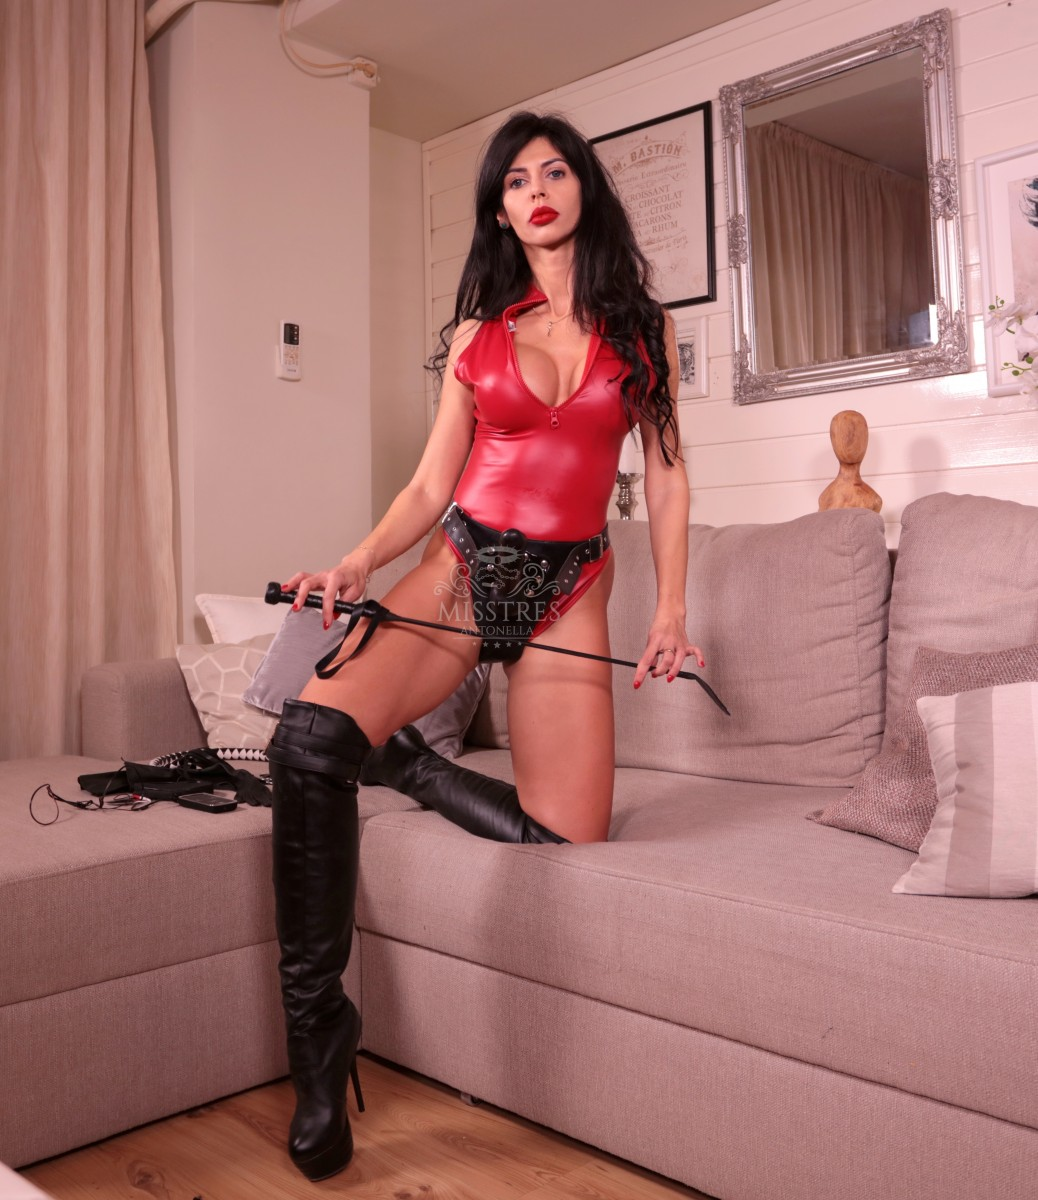 mistress-antonella-strap-on-and-whip-to-punish-sissy-men